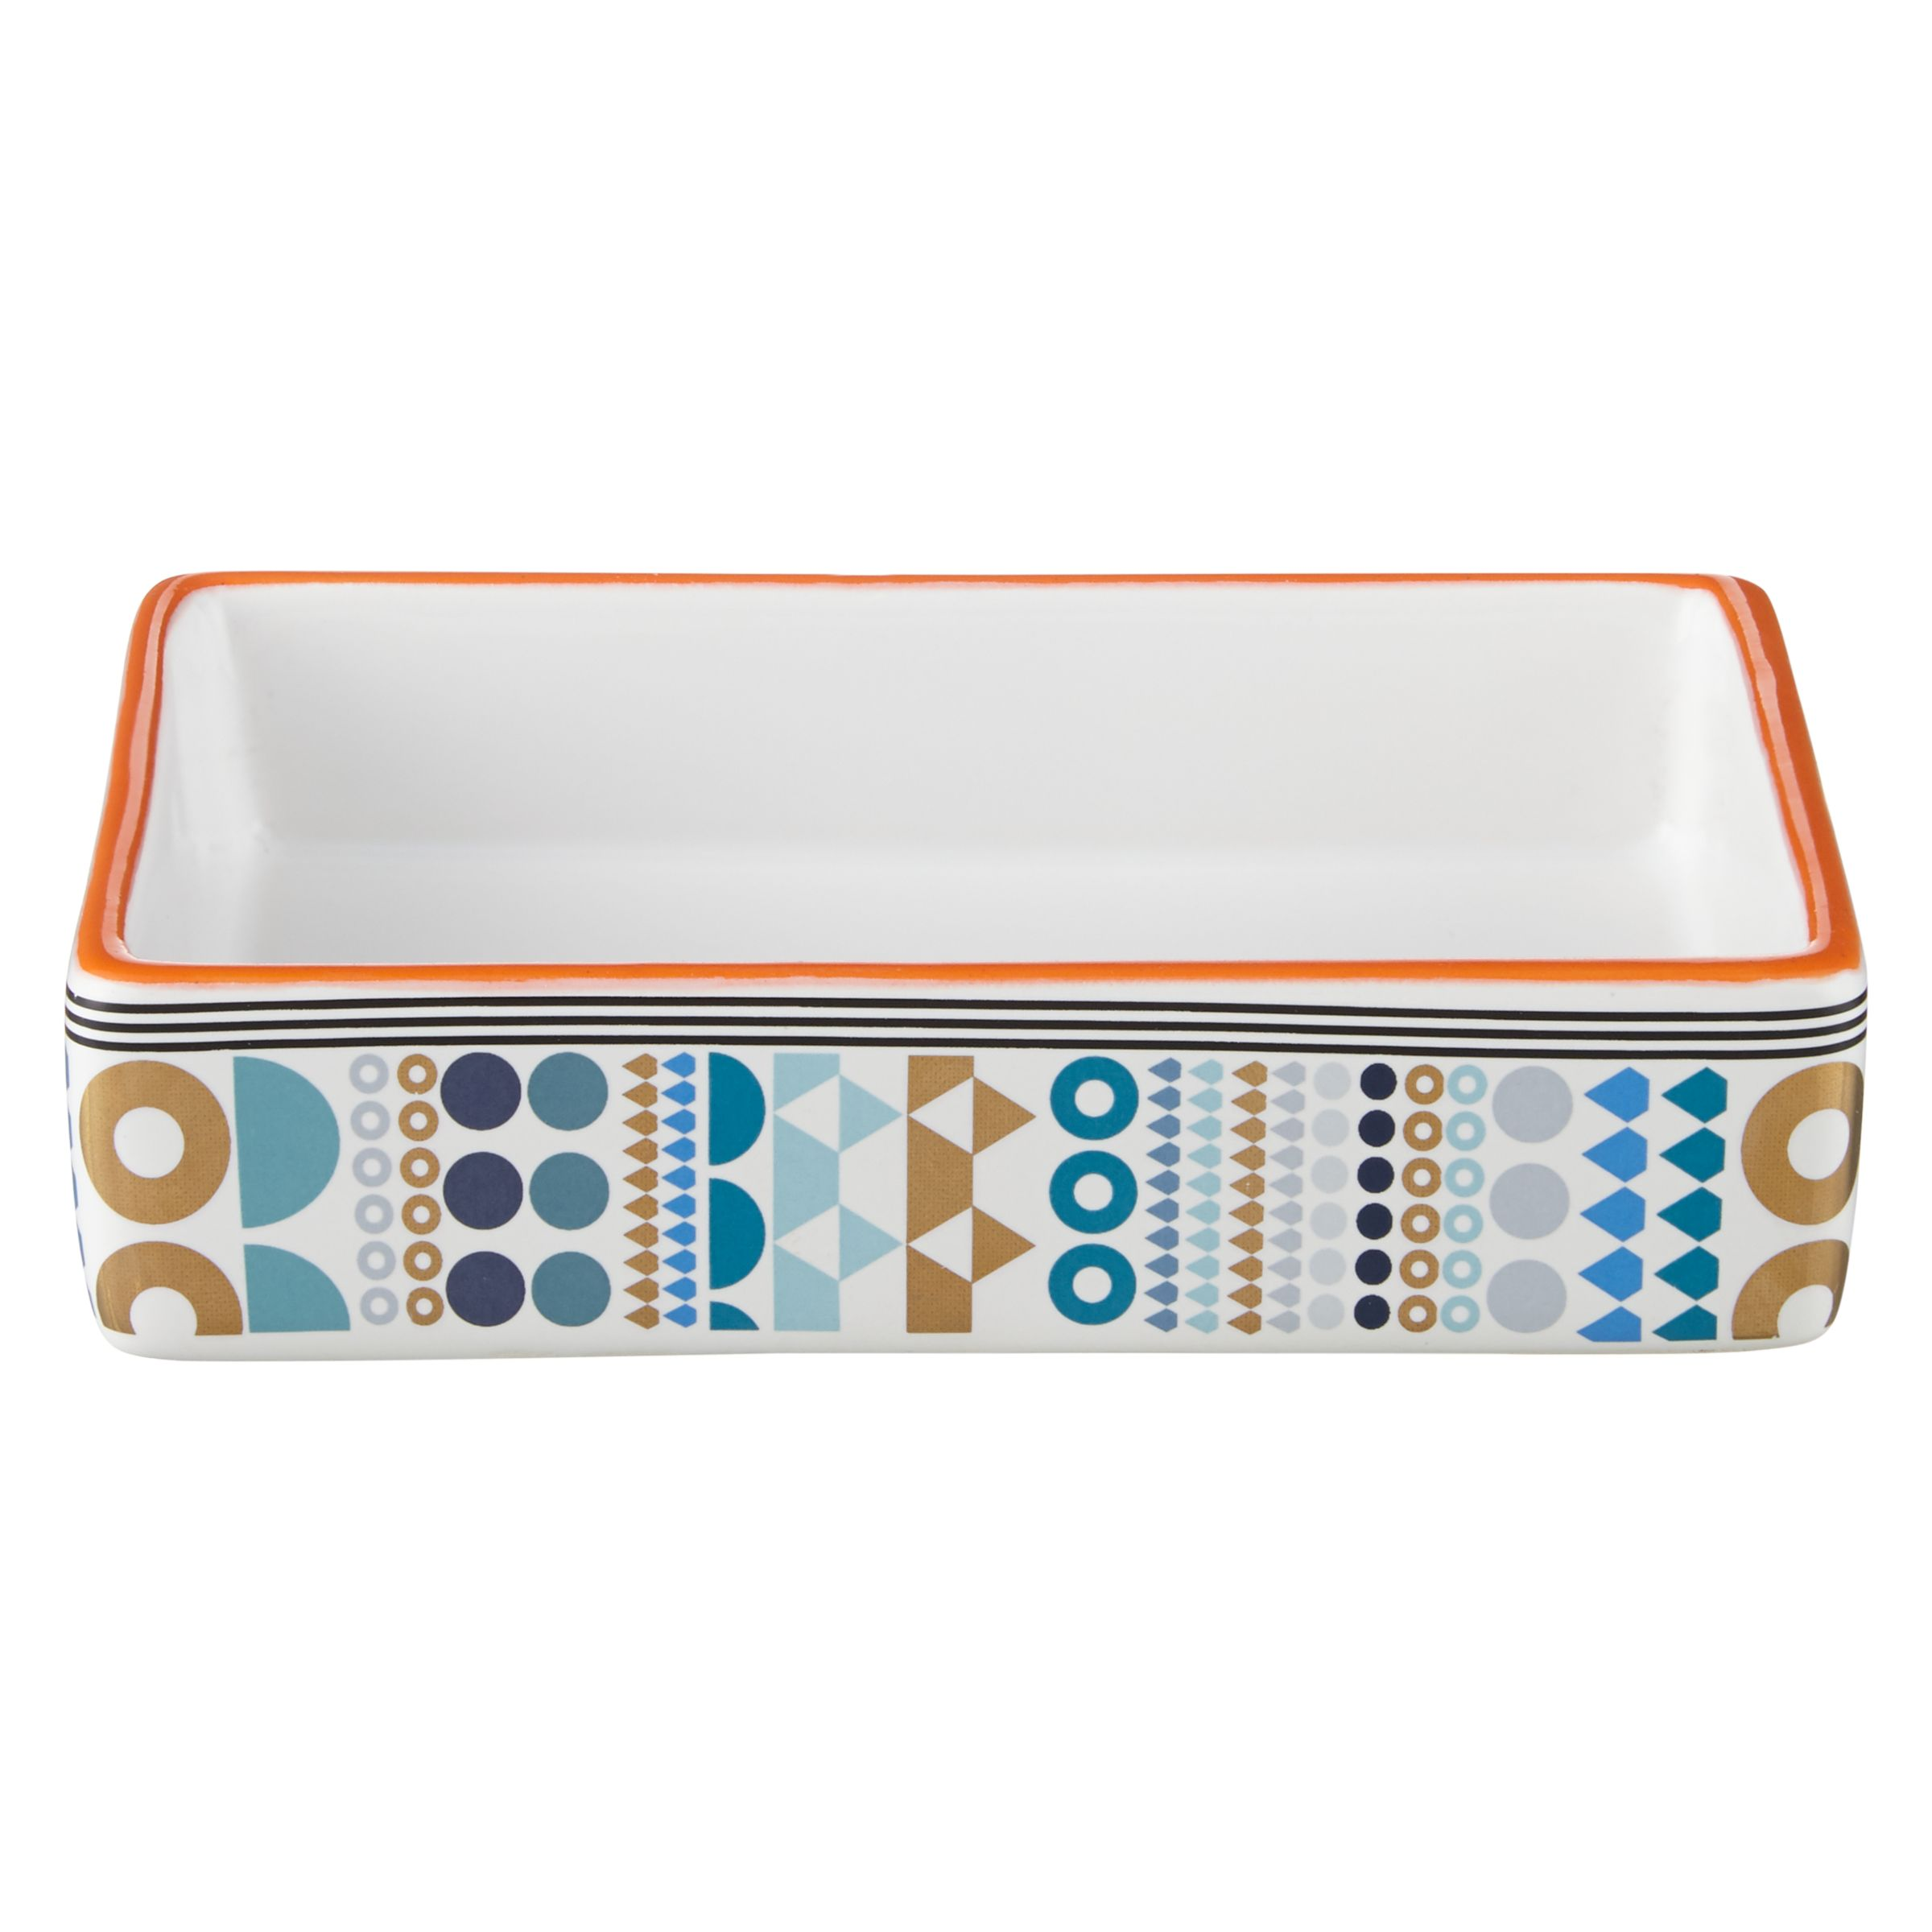 Margo Selby for John Lewis Margo Selby for John Lewis Soap Dish